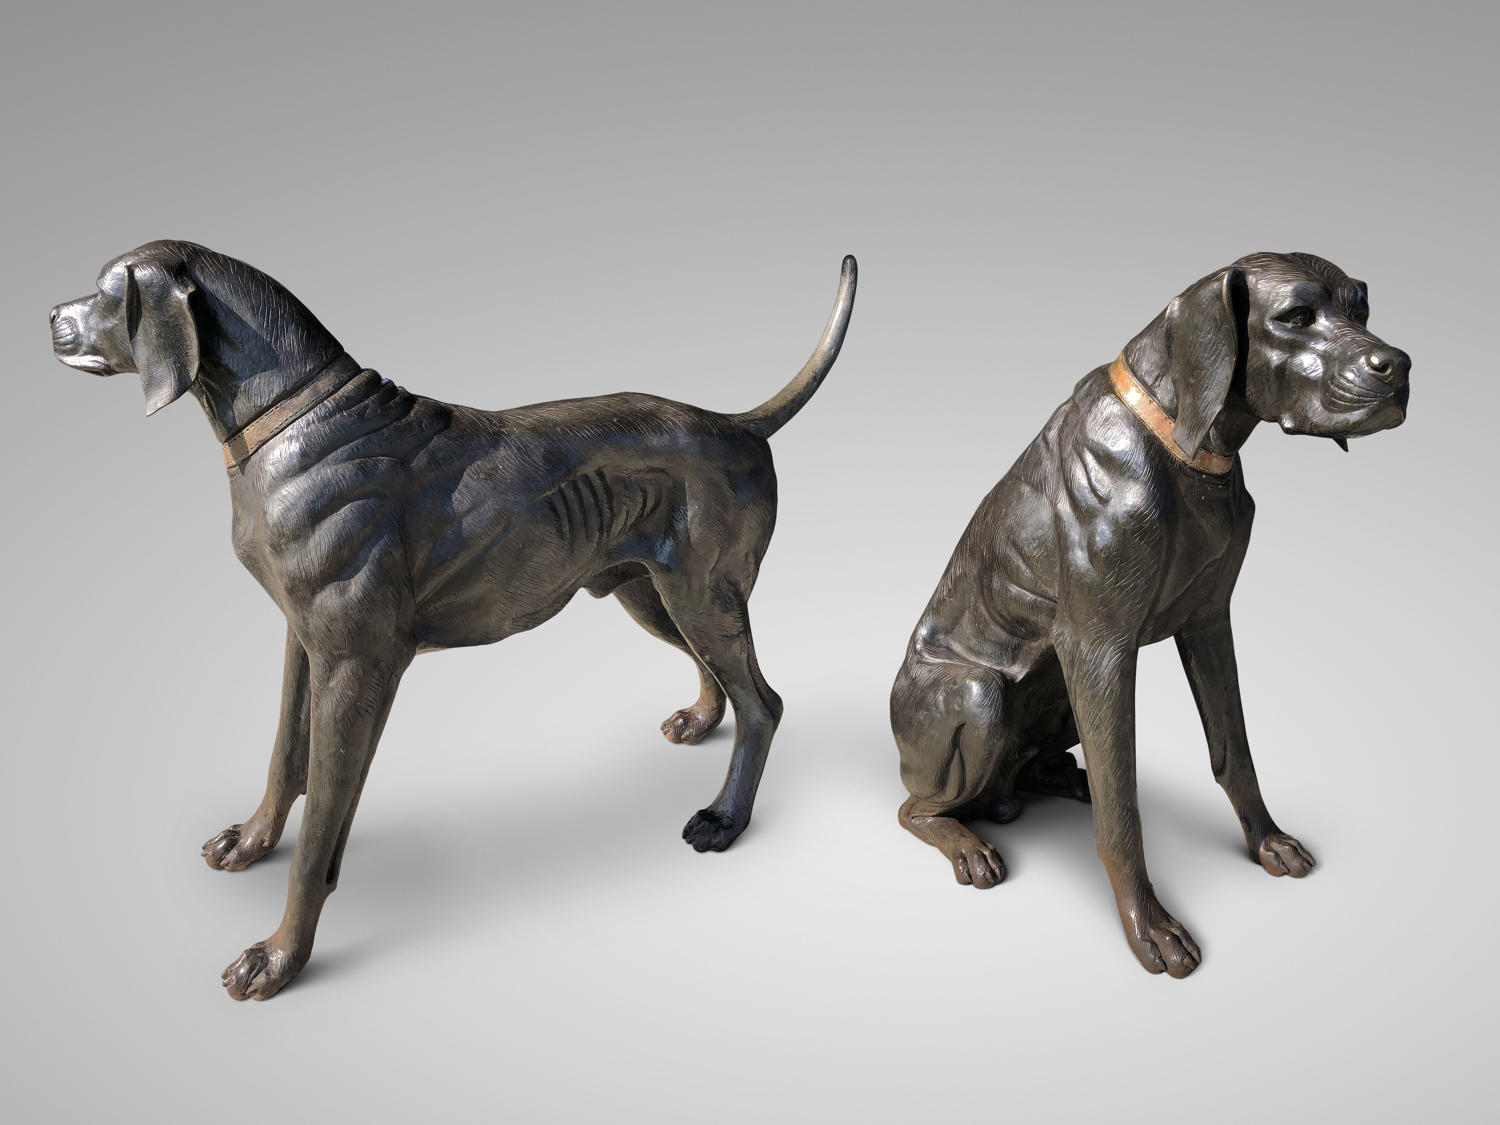 A PAIR OF LIFE-SIZE BRONZE HOUNDS